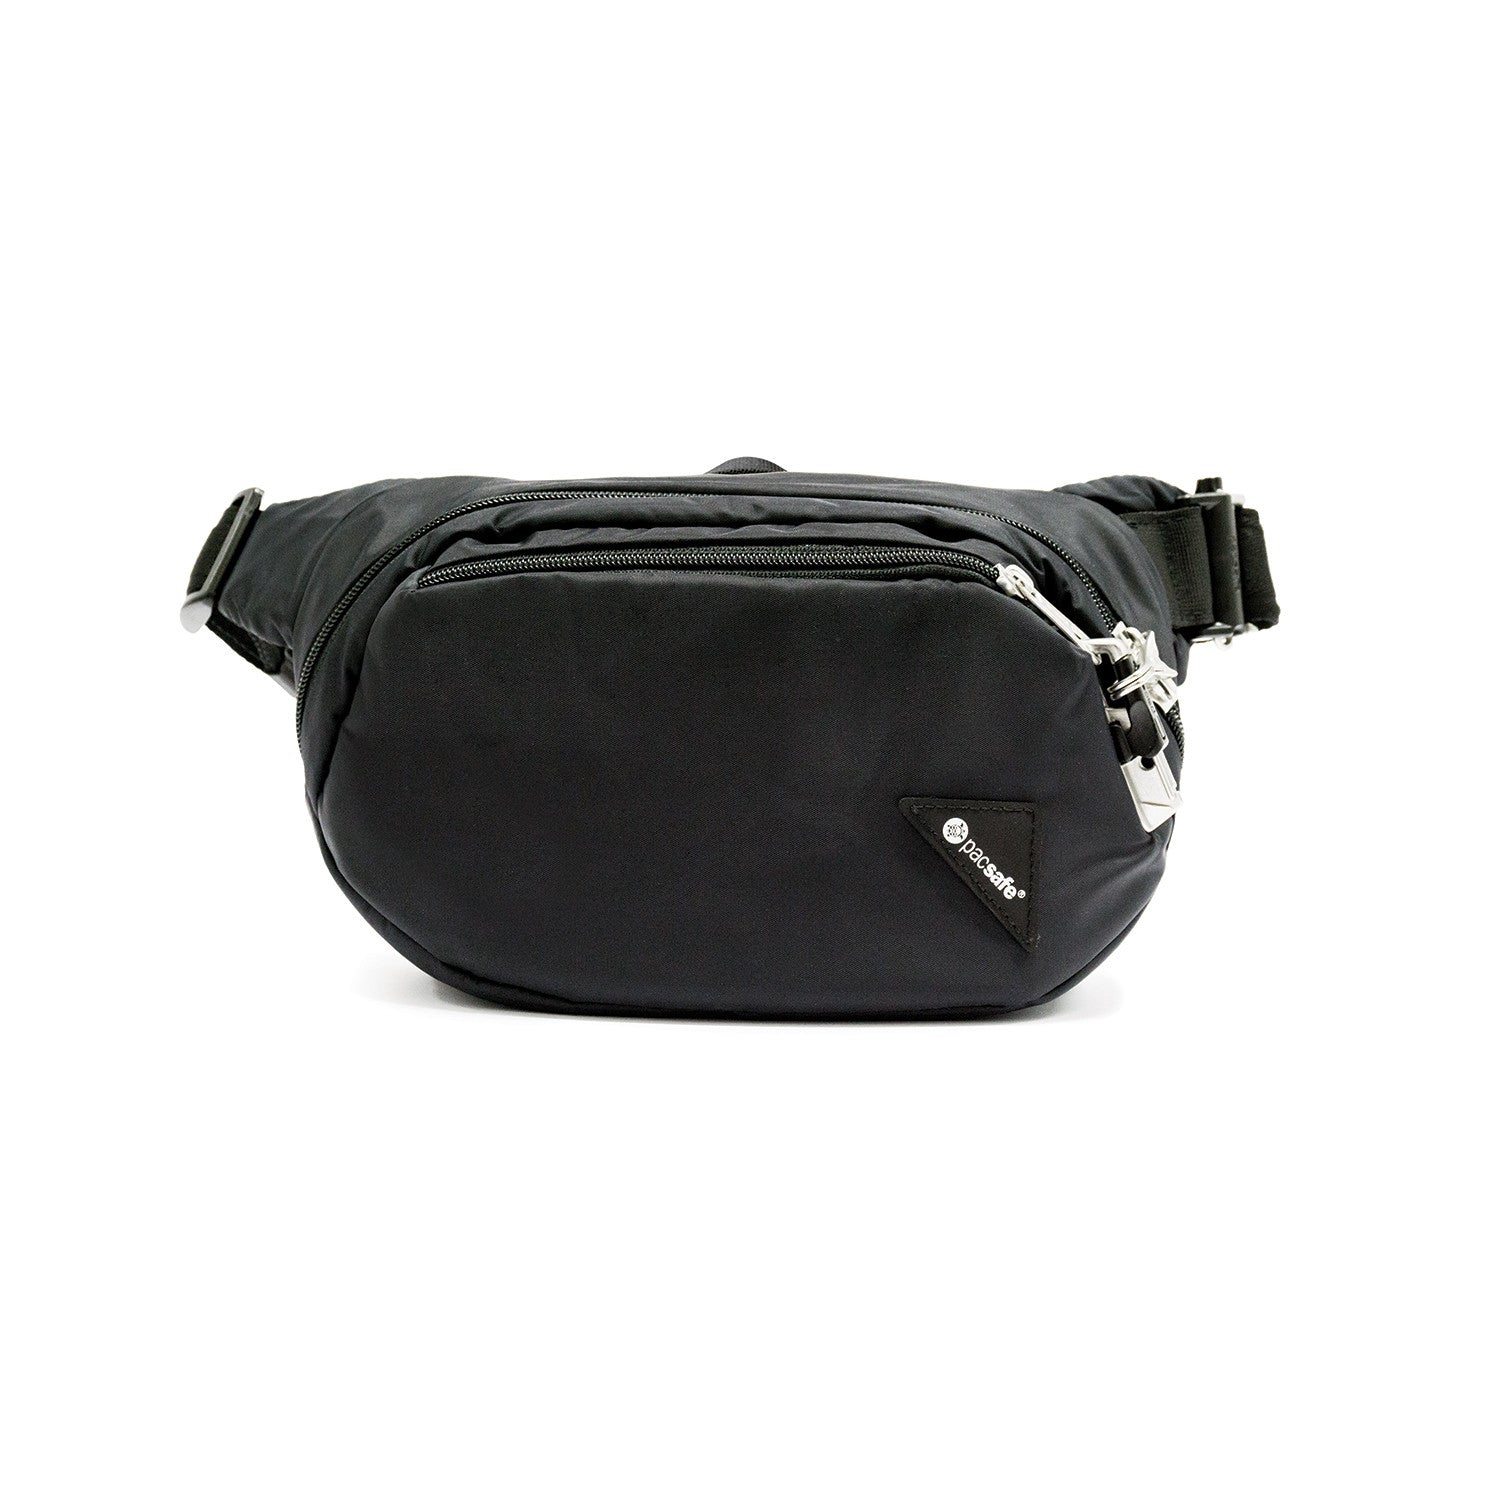 Pacsafe-Vibe 100 Anti-Theft Hip Pack-RFID Bag-Black-Gearaholic.com.sg